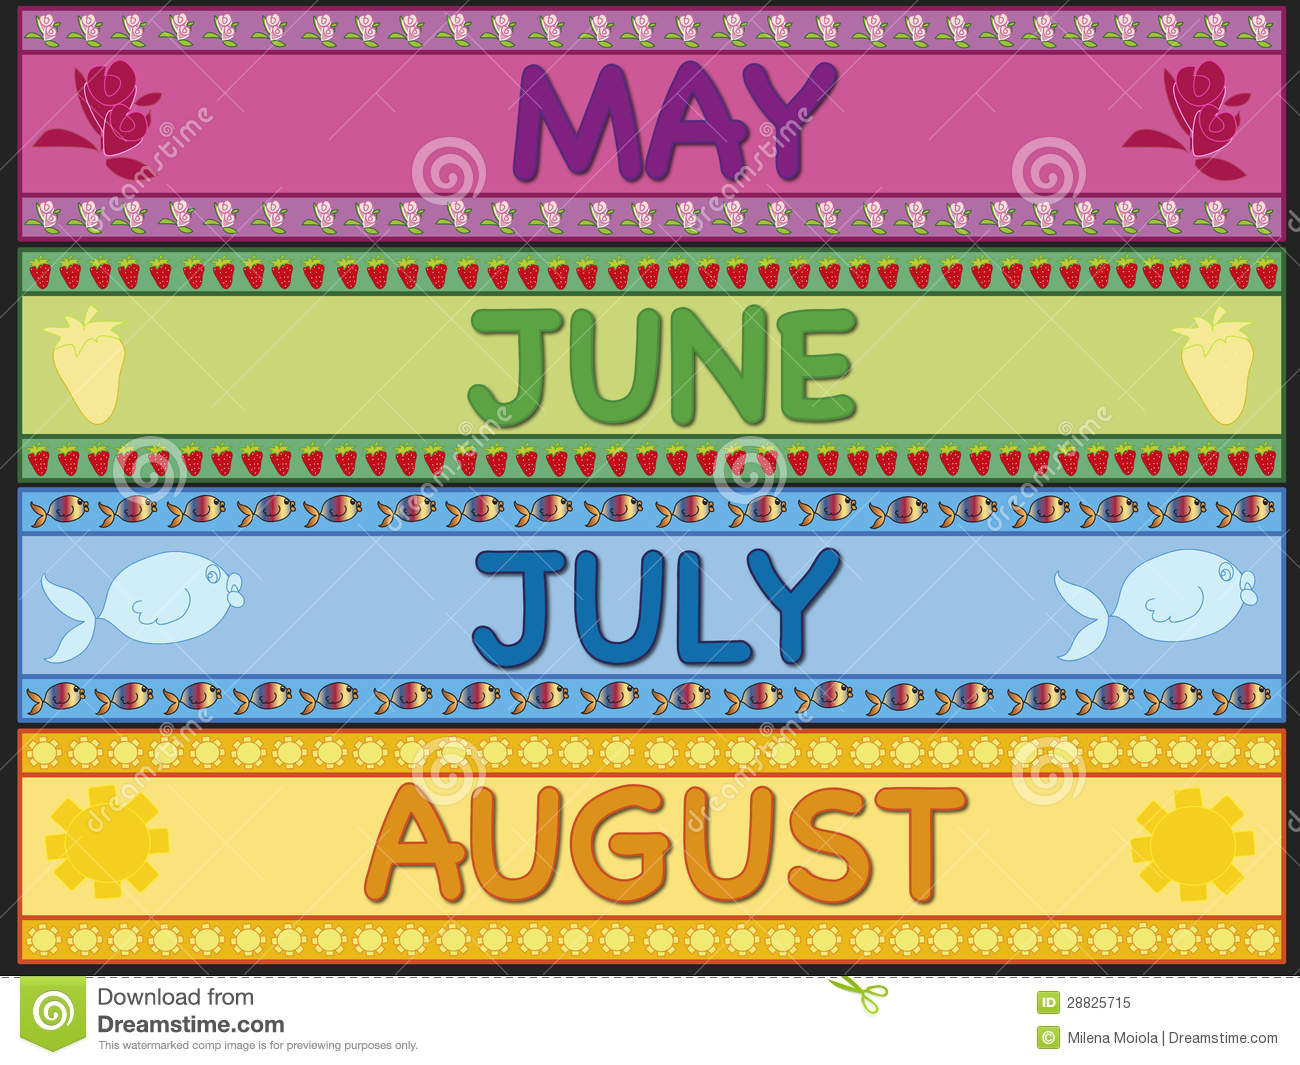 May June July August Royalty Free Stock Photo - Image: 28825715